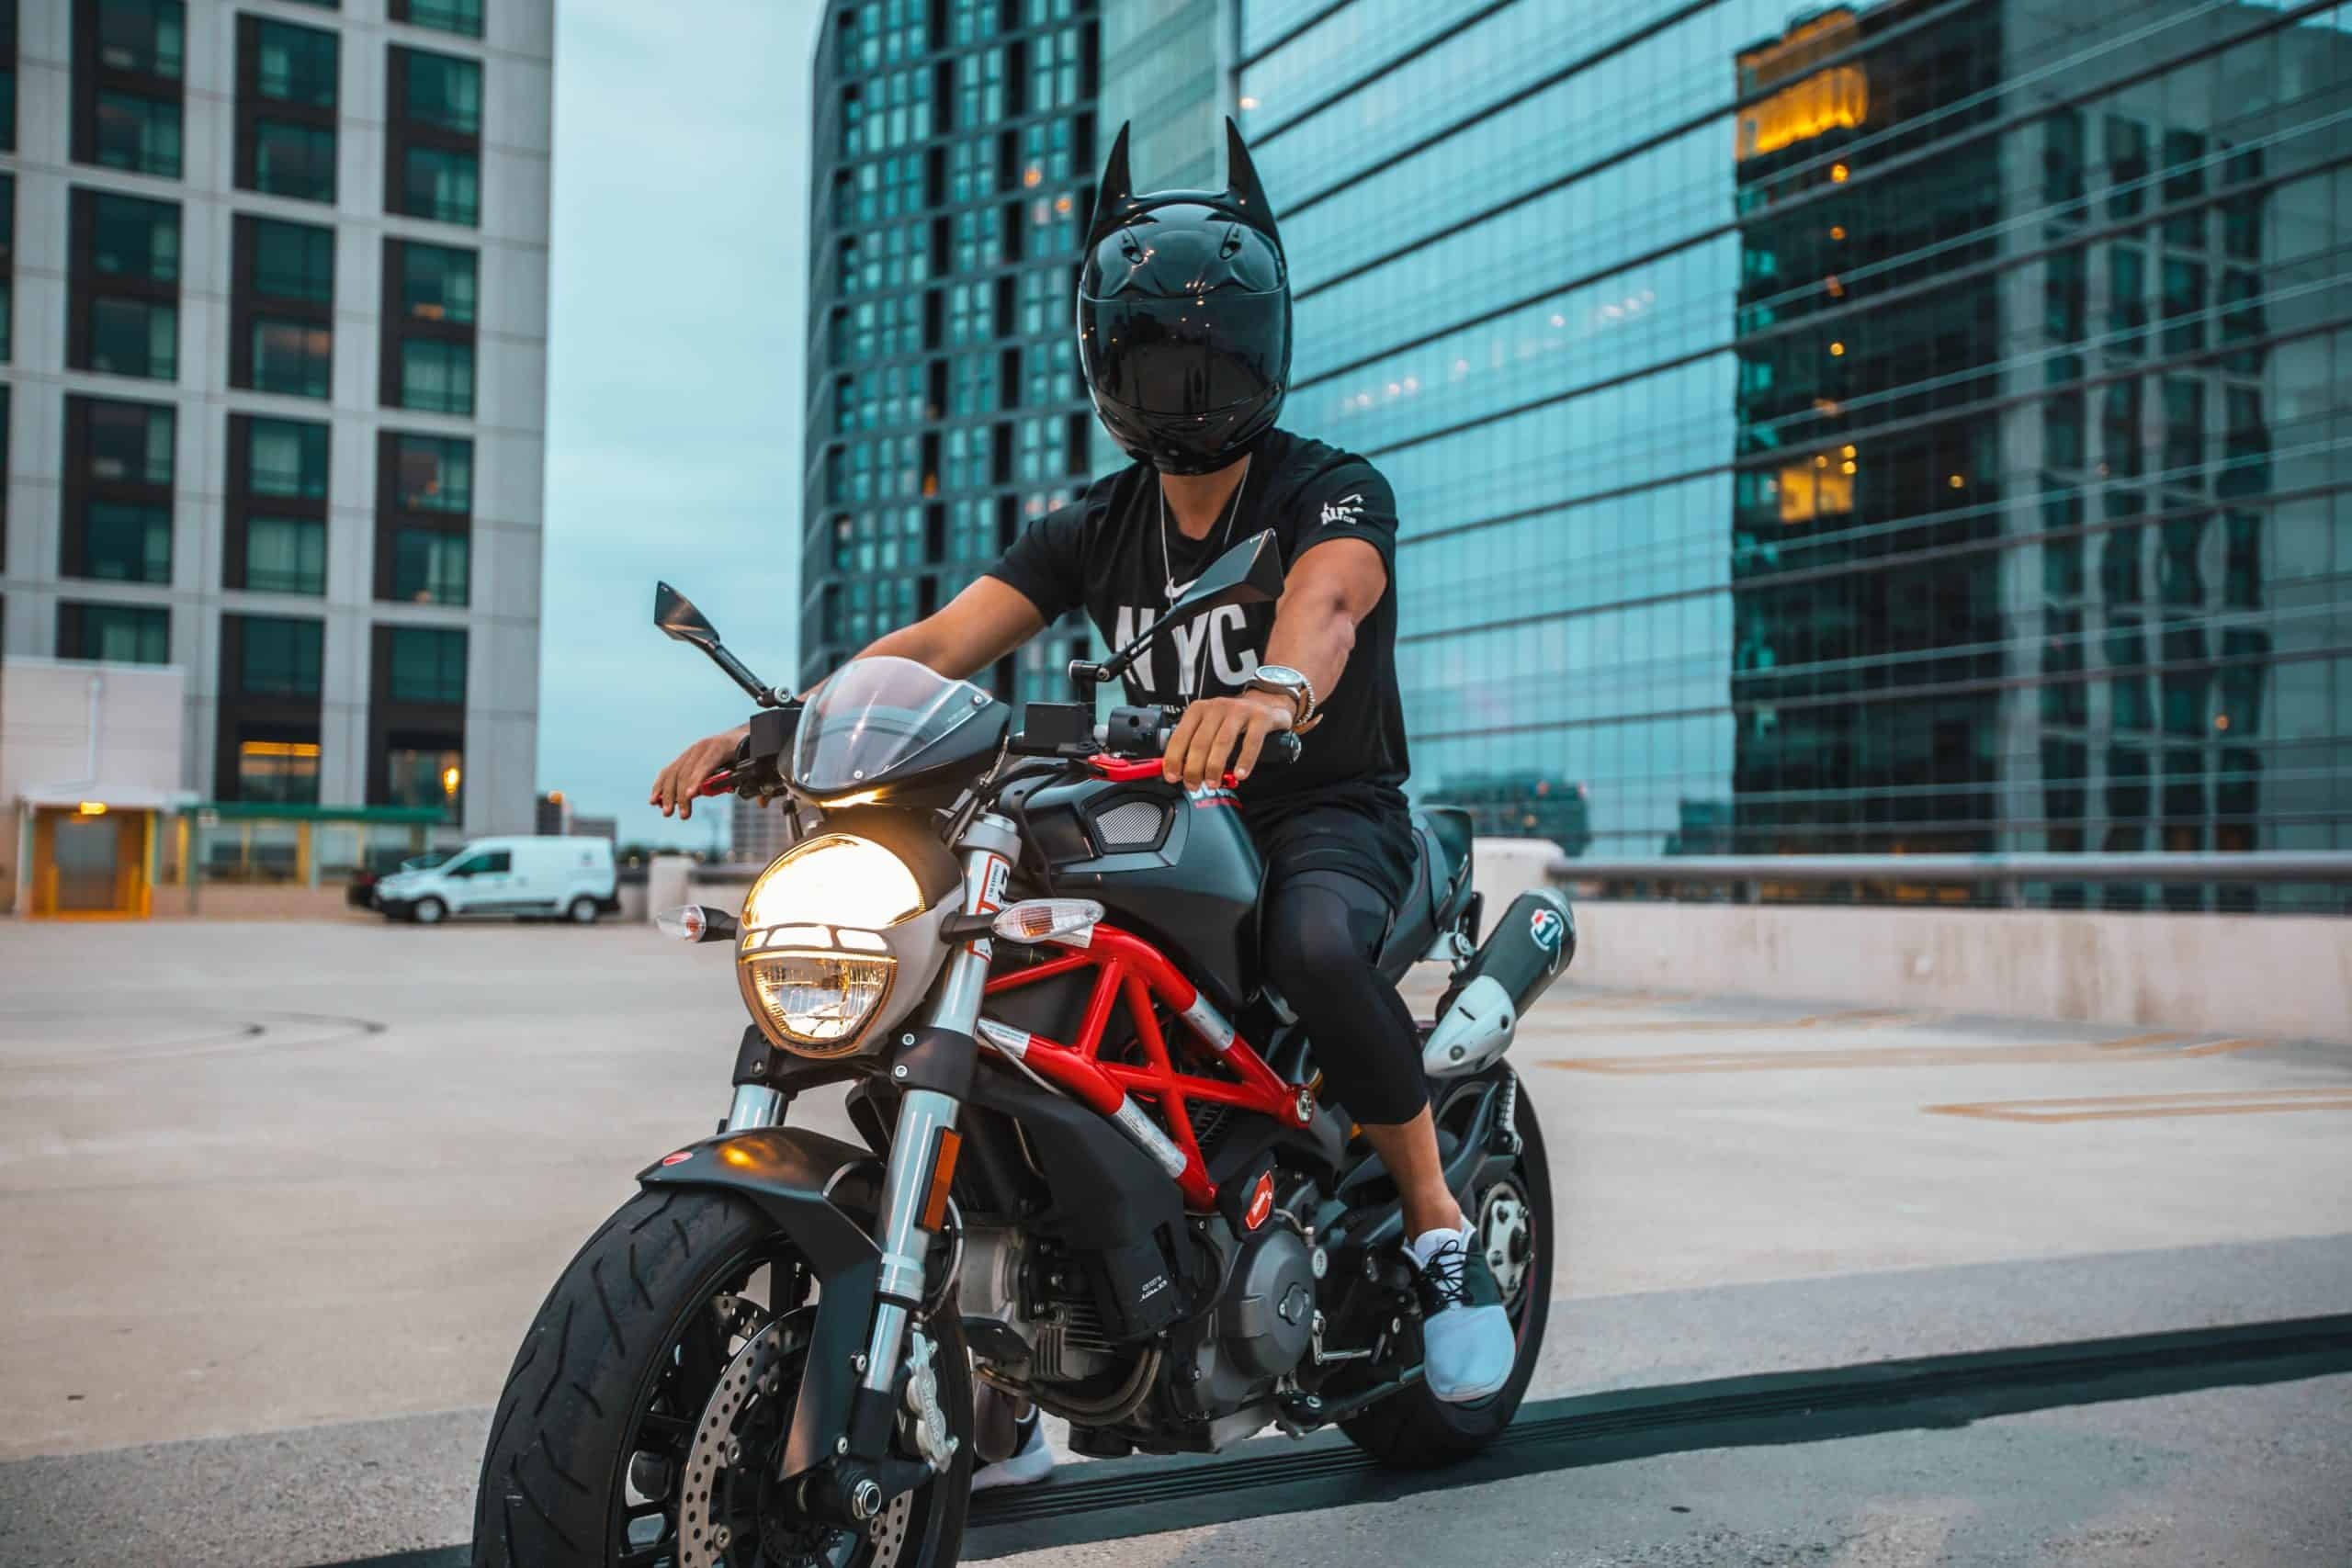 How Should Motorcycle Riders Behave On-Road